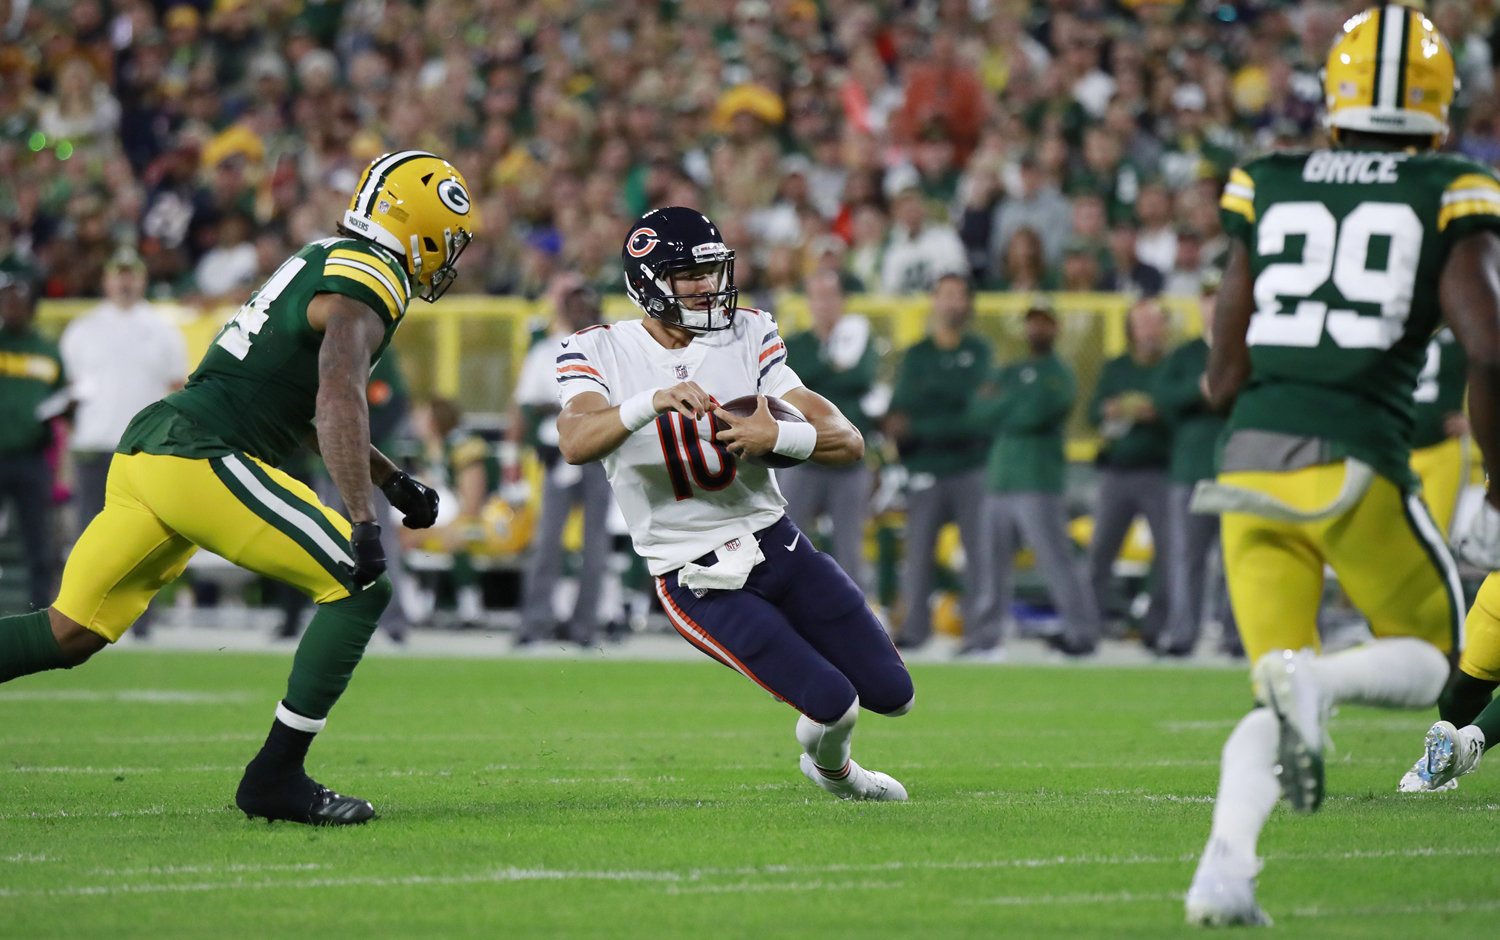 Chicago Bears quarterback Mitchell Trubisky (10) runs for some yardage against the Green Bay Packers on Sept. 9, 2018, at Lambeau Field in Green Bay, Wis.